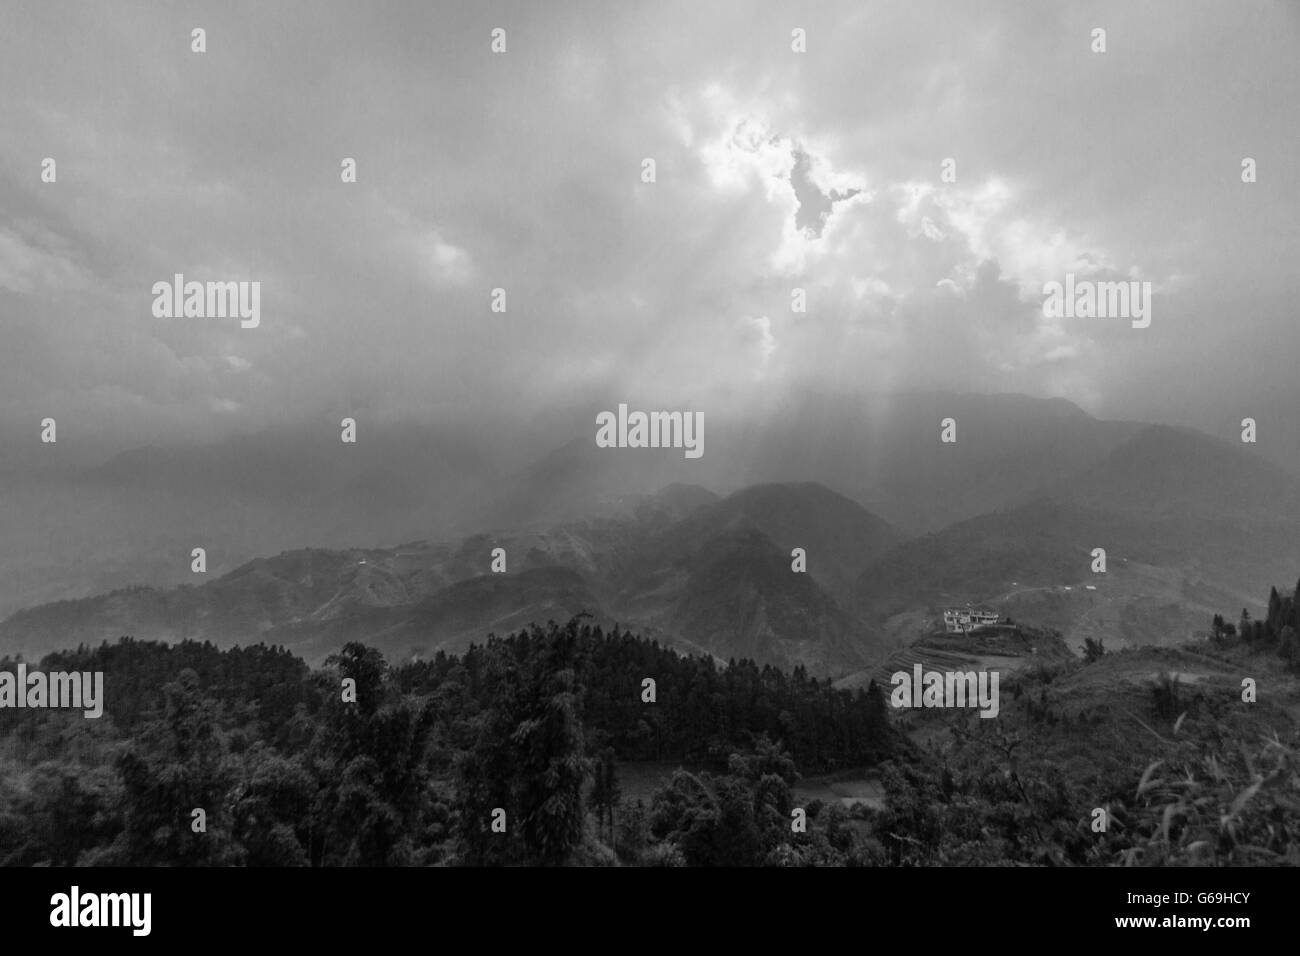 Lush vegetation, mountains and the sun breaking through a dense blanket of clouds in northern Vietnam. - Stock Image